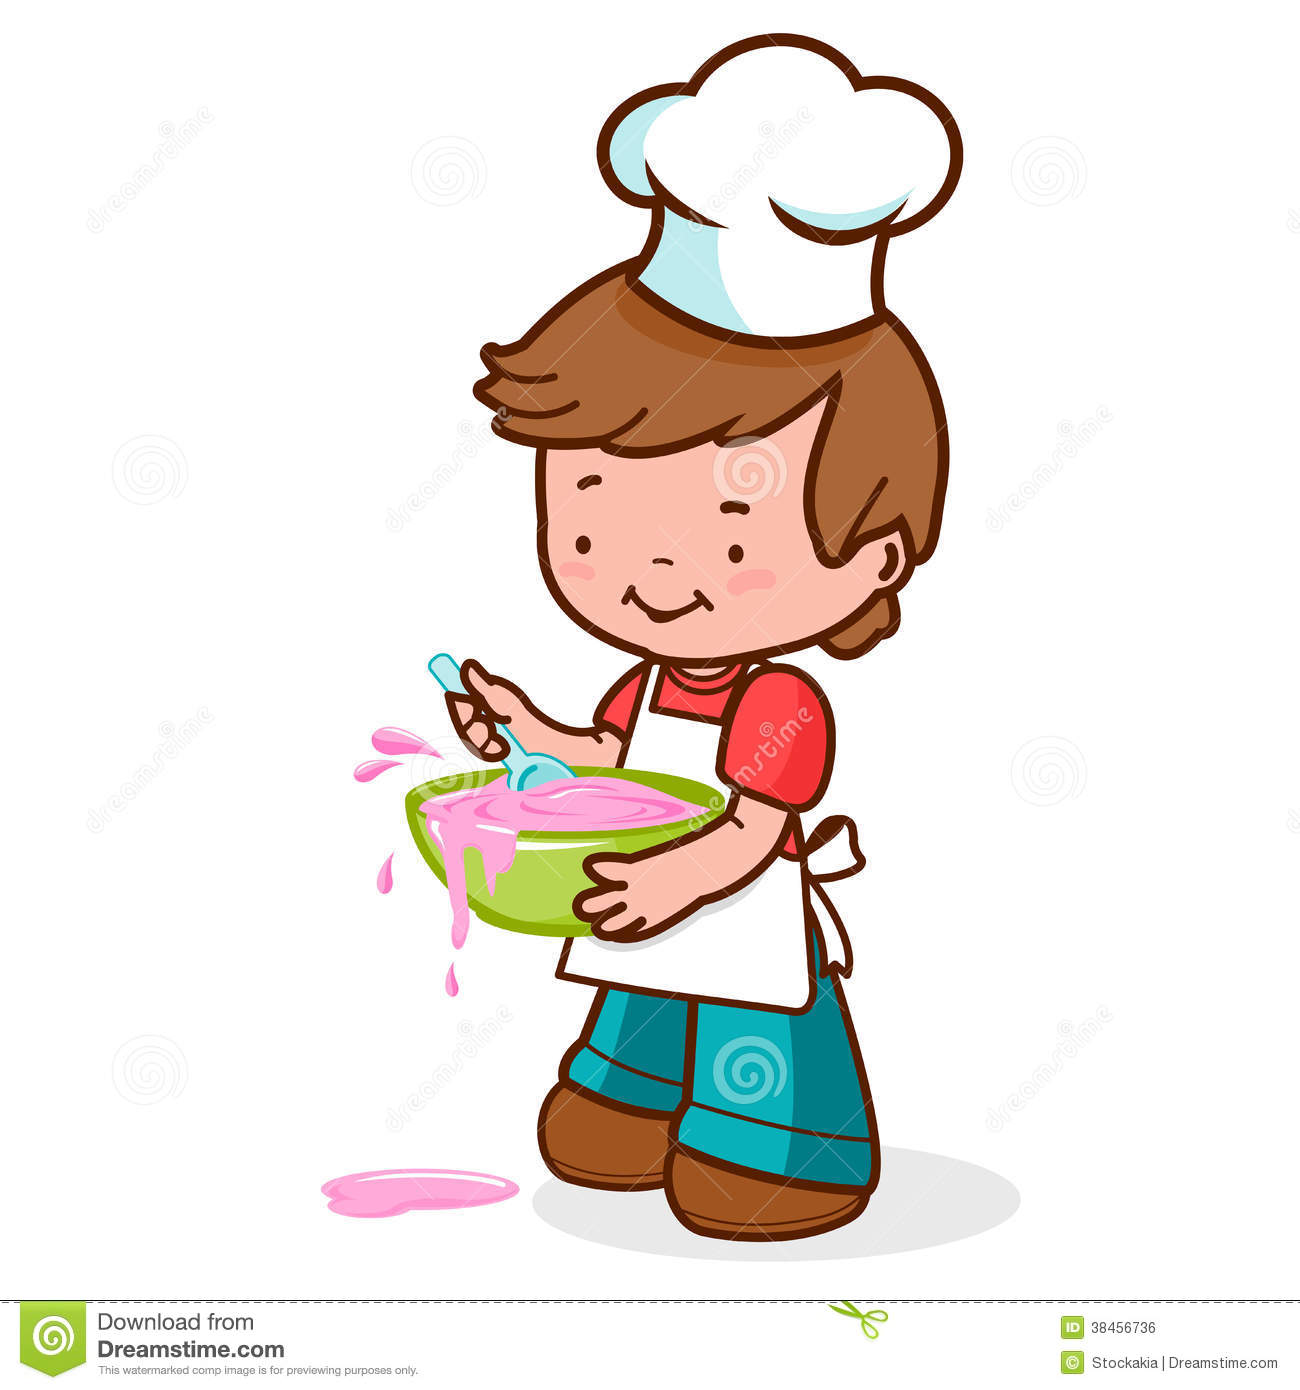 Clip Art Messy Kitchen: Messy Boy Chef Cooking Stock Vector. Illustration Of Food